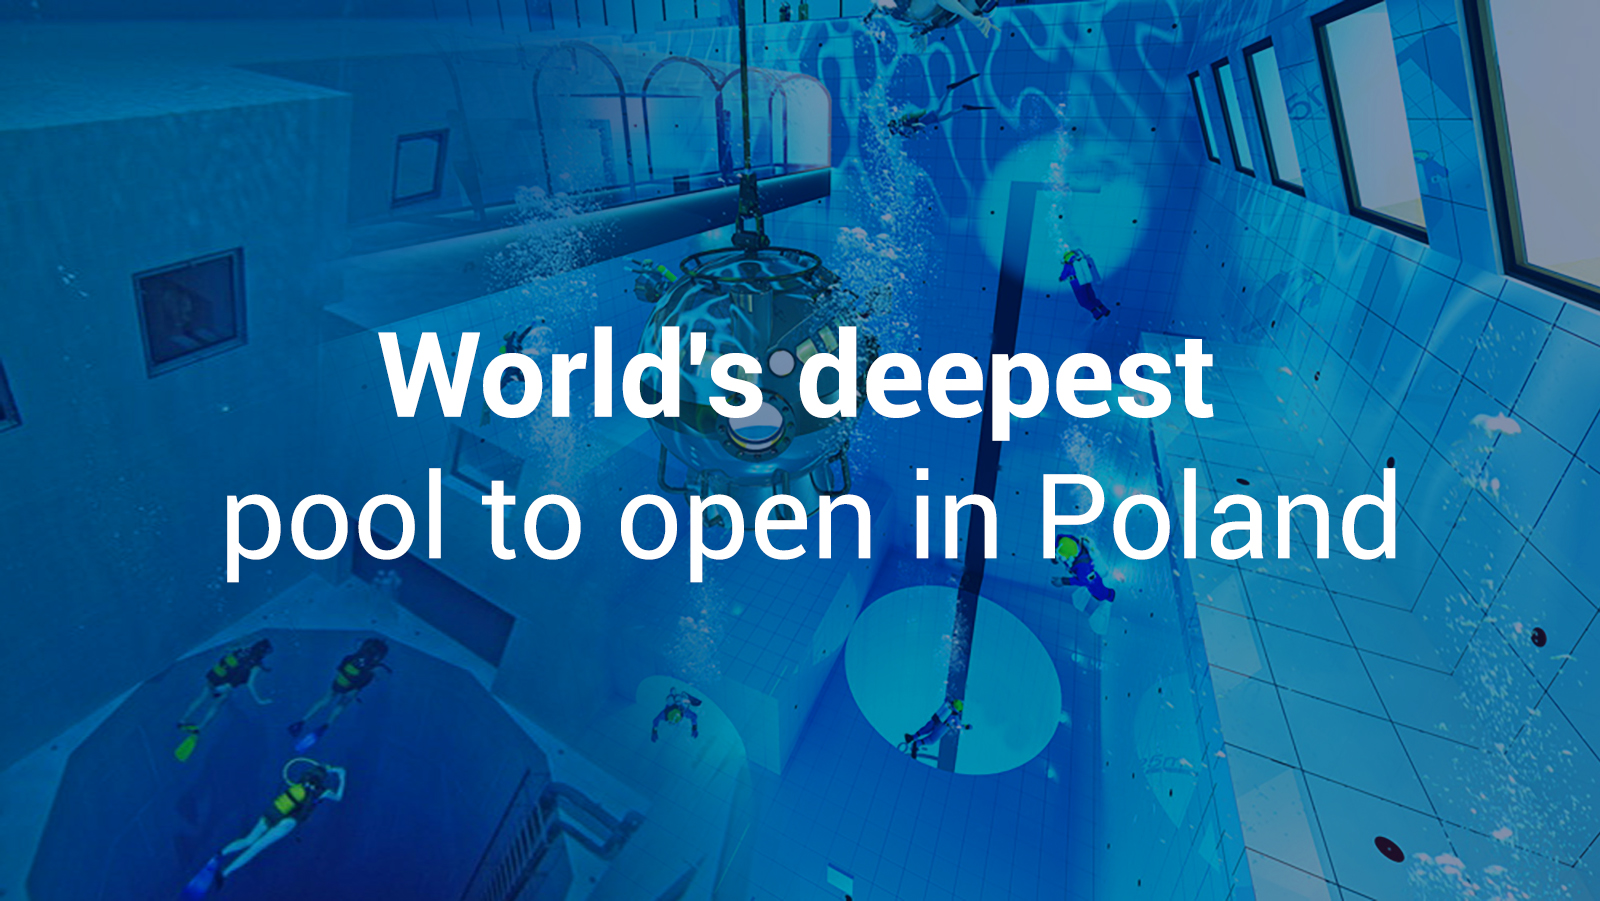 Poland is Opening the World's deepest pool